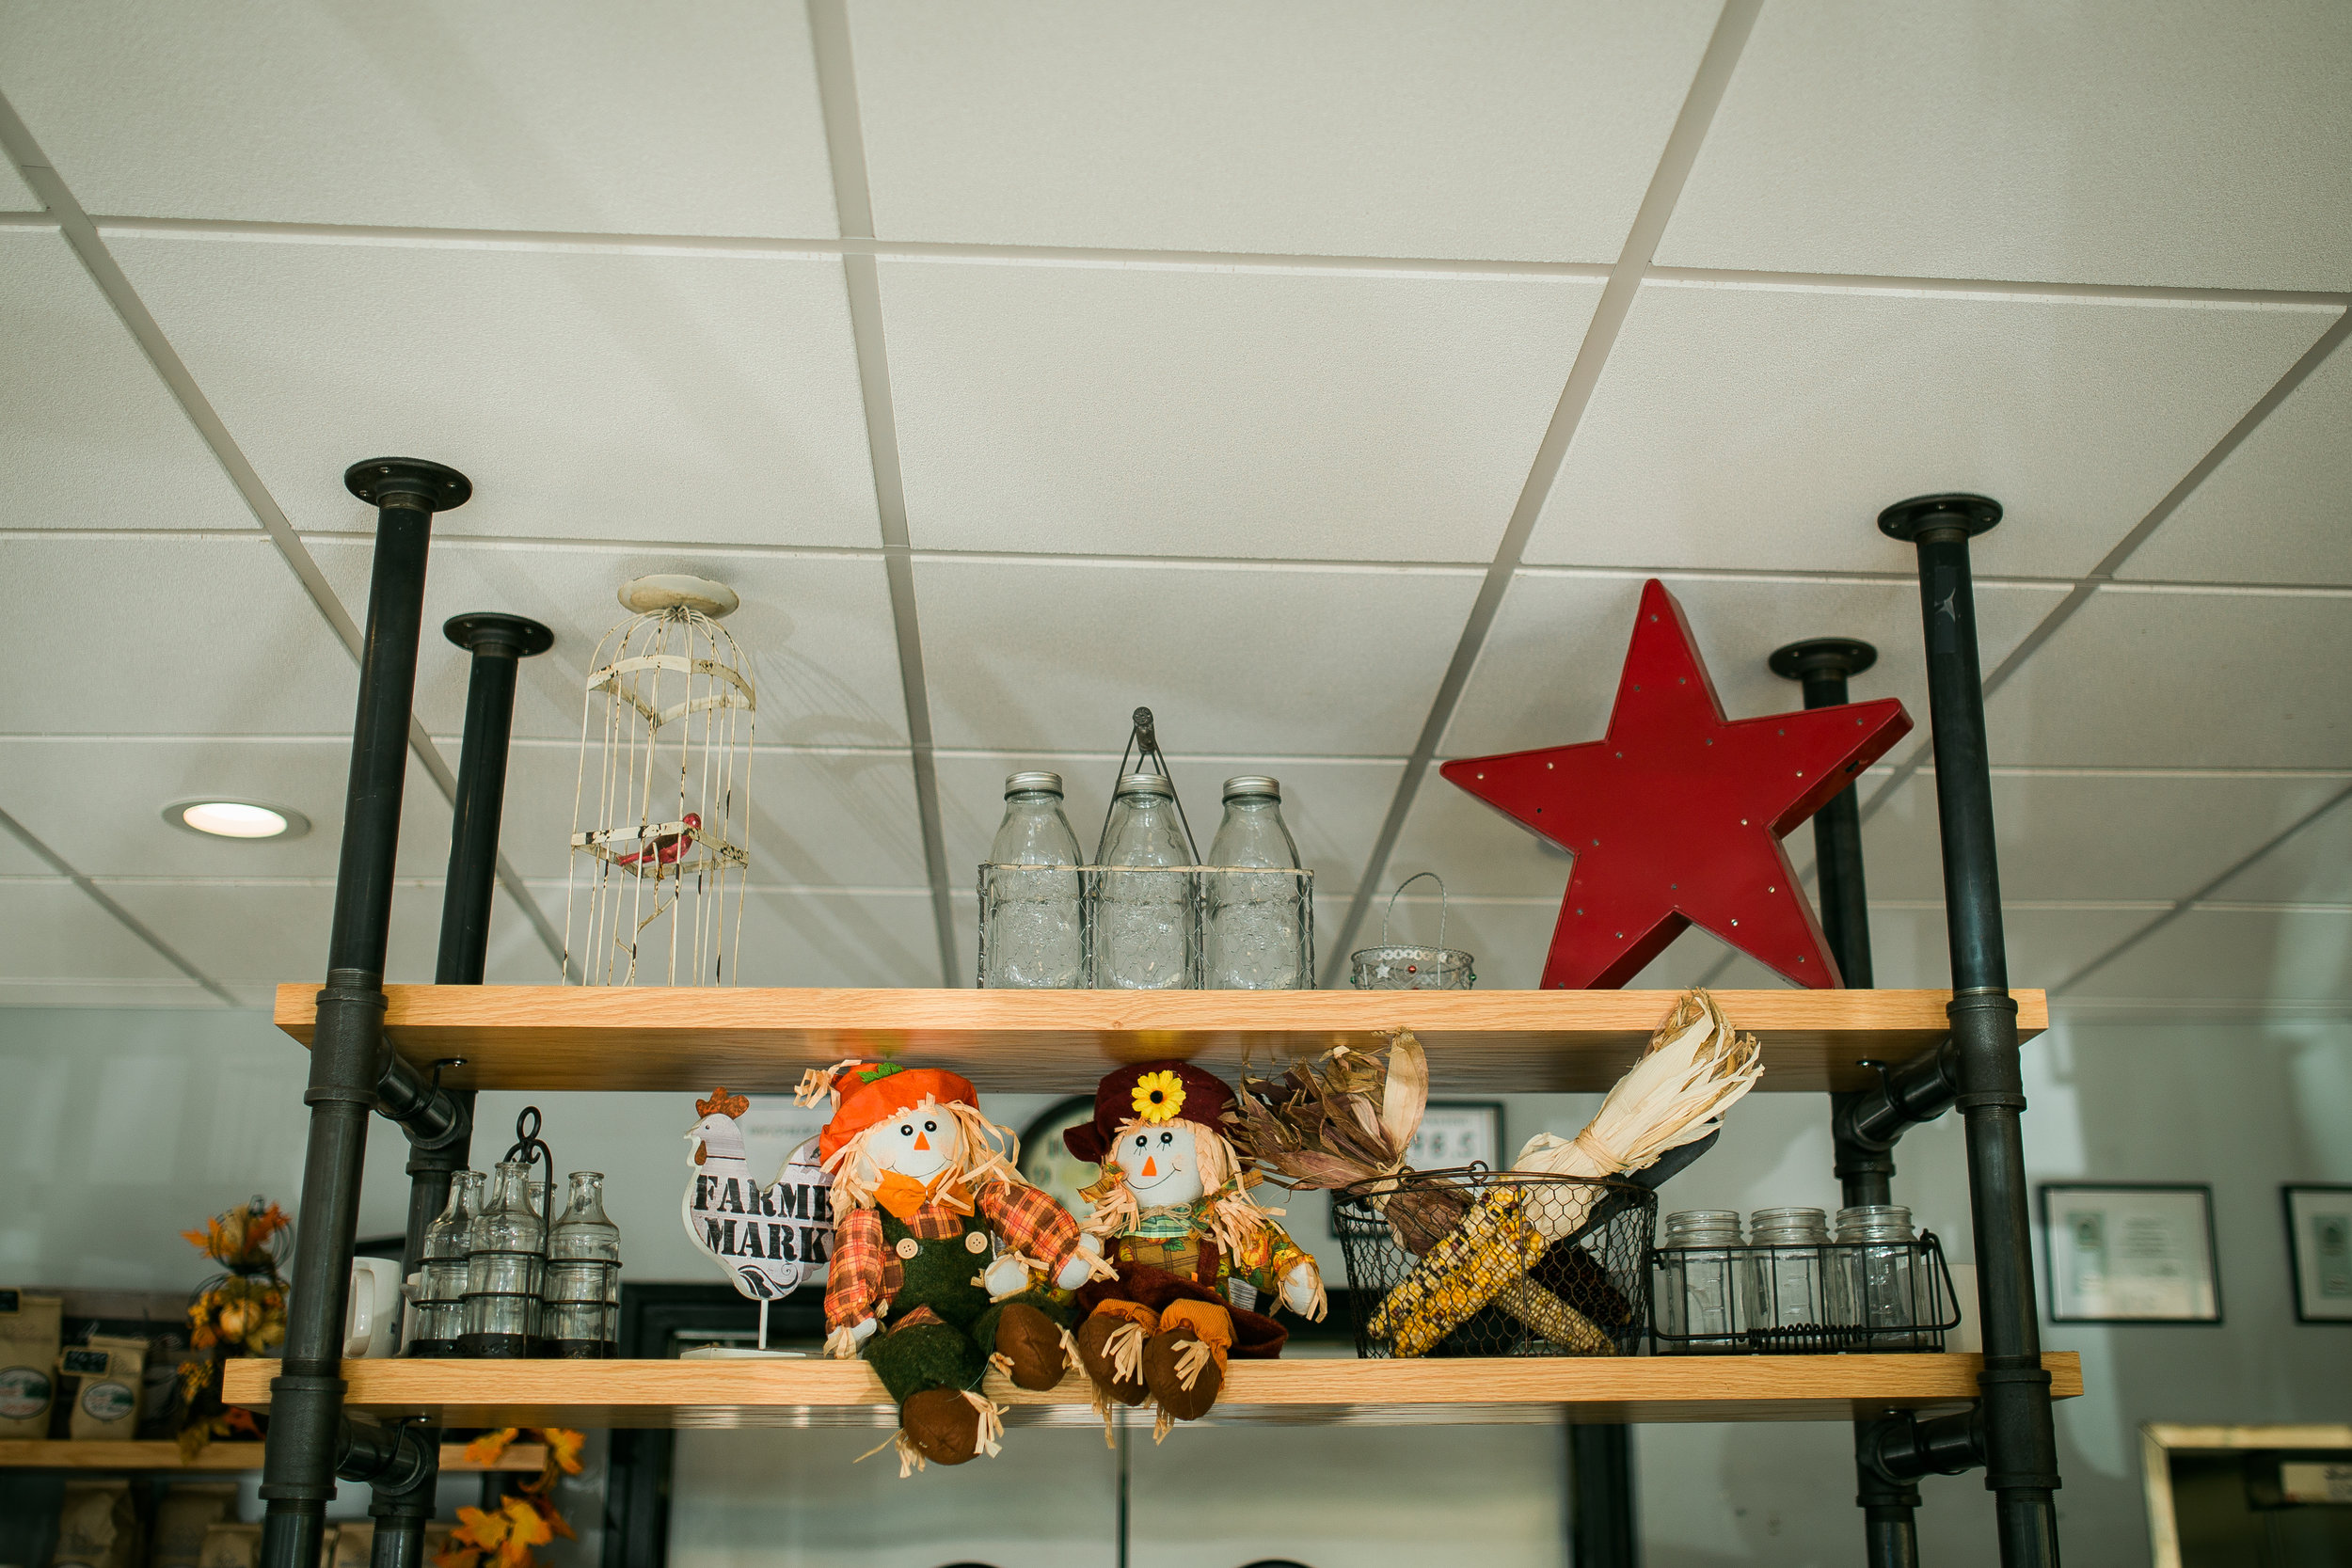 country farmhouse decor featuring red star and scarecrows as well as iron pipe shelving